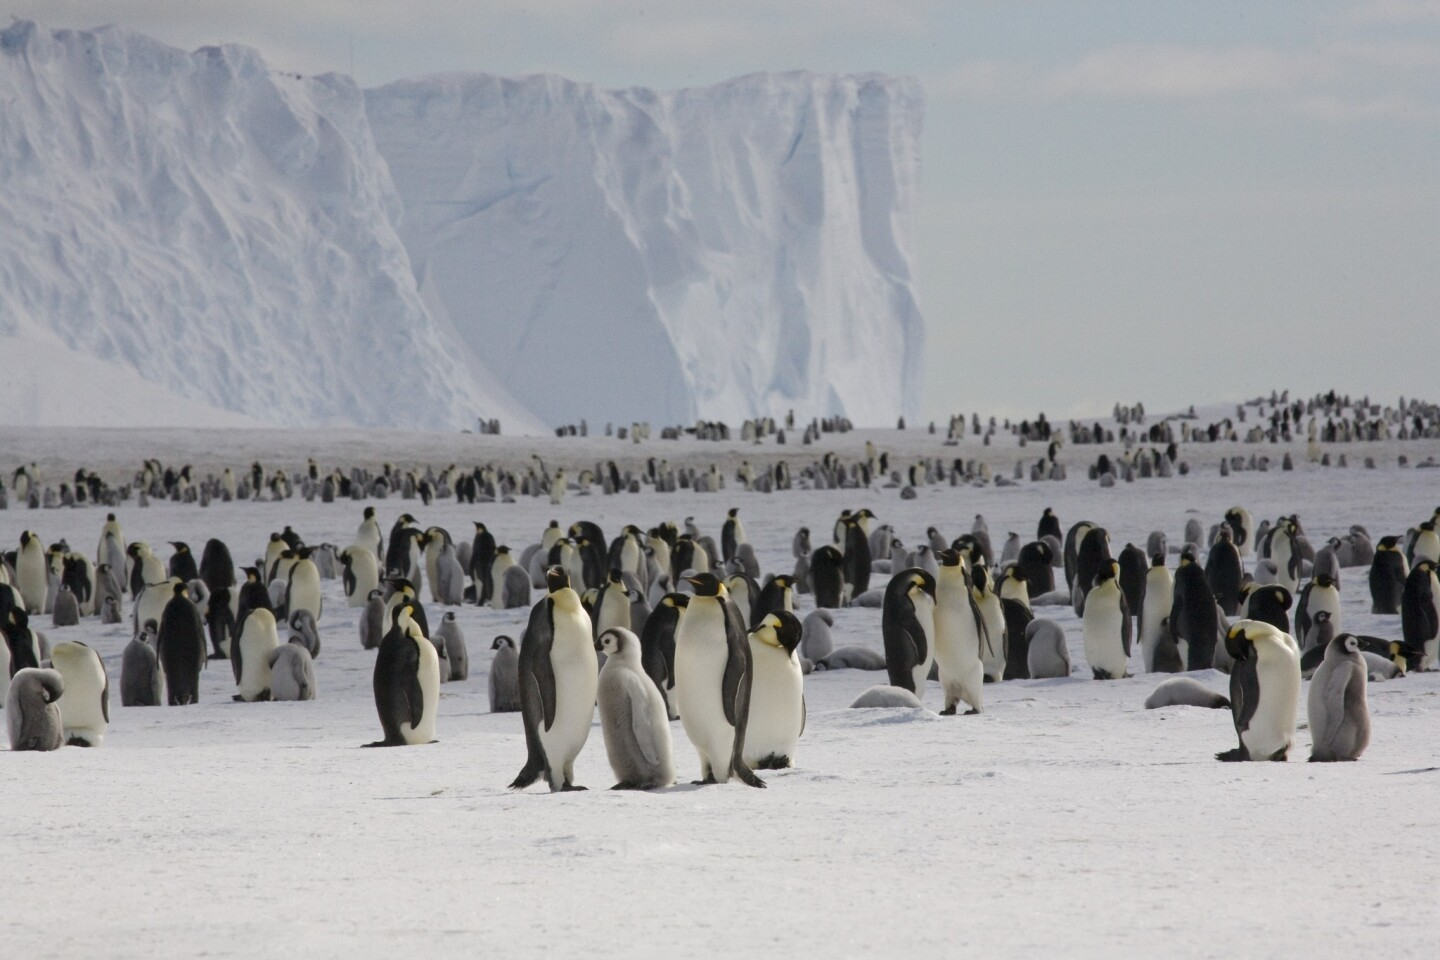 Scientists studying huddles of emperor penguins in Antarctica have discovered that waves of movement travel though huddled masses of flightless birds rather as they do through cars stuck on the 405 Freeway during rush hour - but in ways that maximize the huddle's density and keep the birds warm as they incubate their eggs. MORE